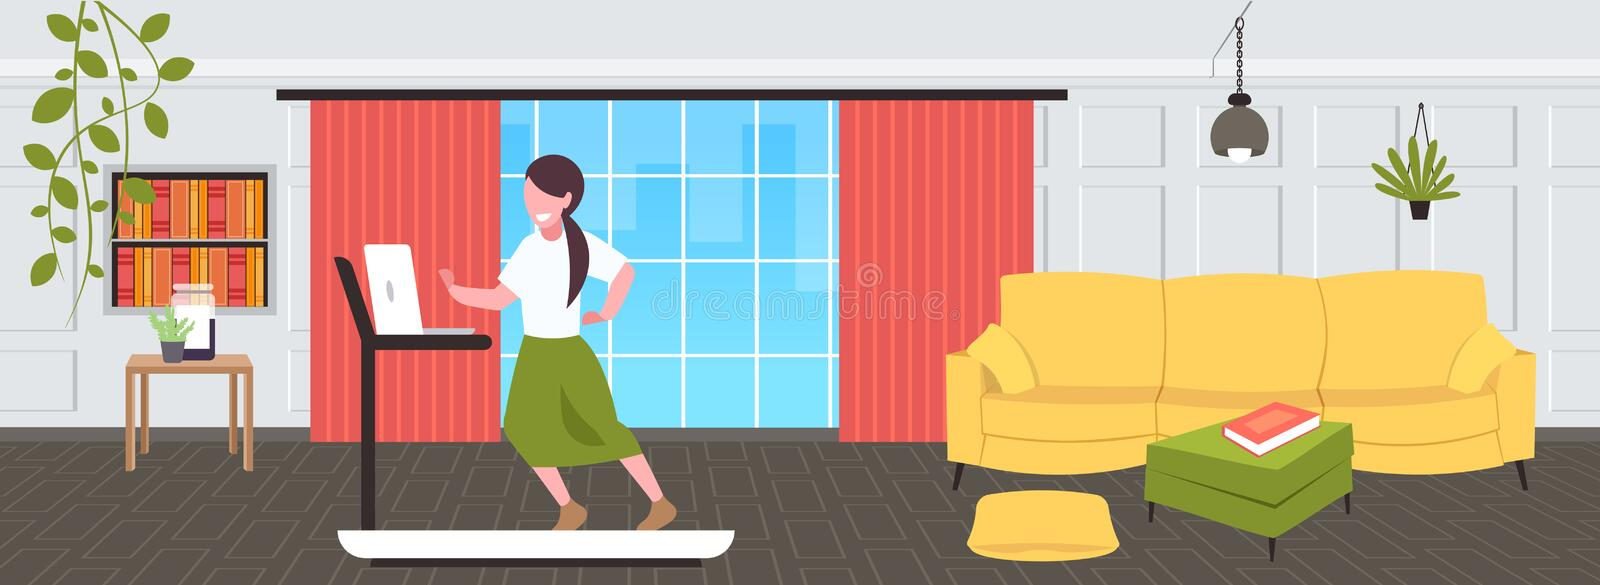 Businesswoman using laptop running on treadmill woman freelancer workout hard working concept modern living room royalty free illustration